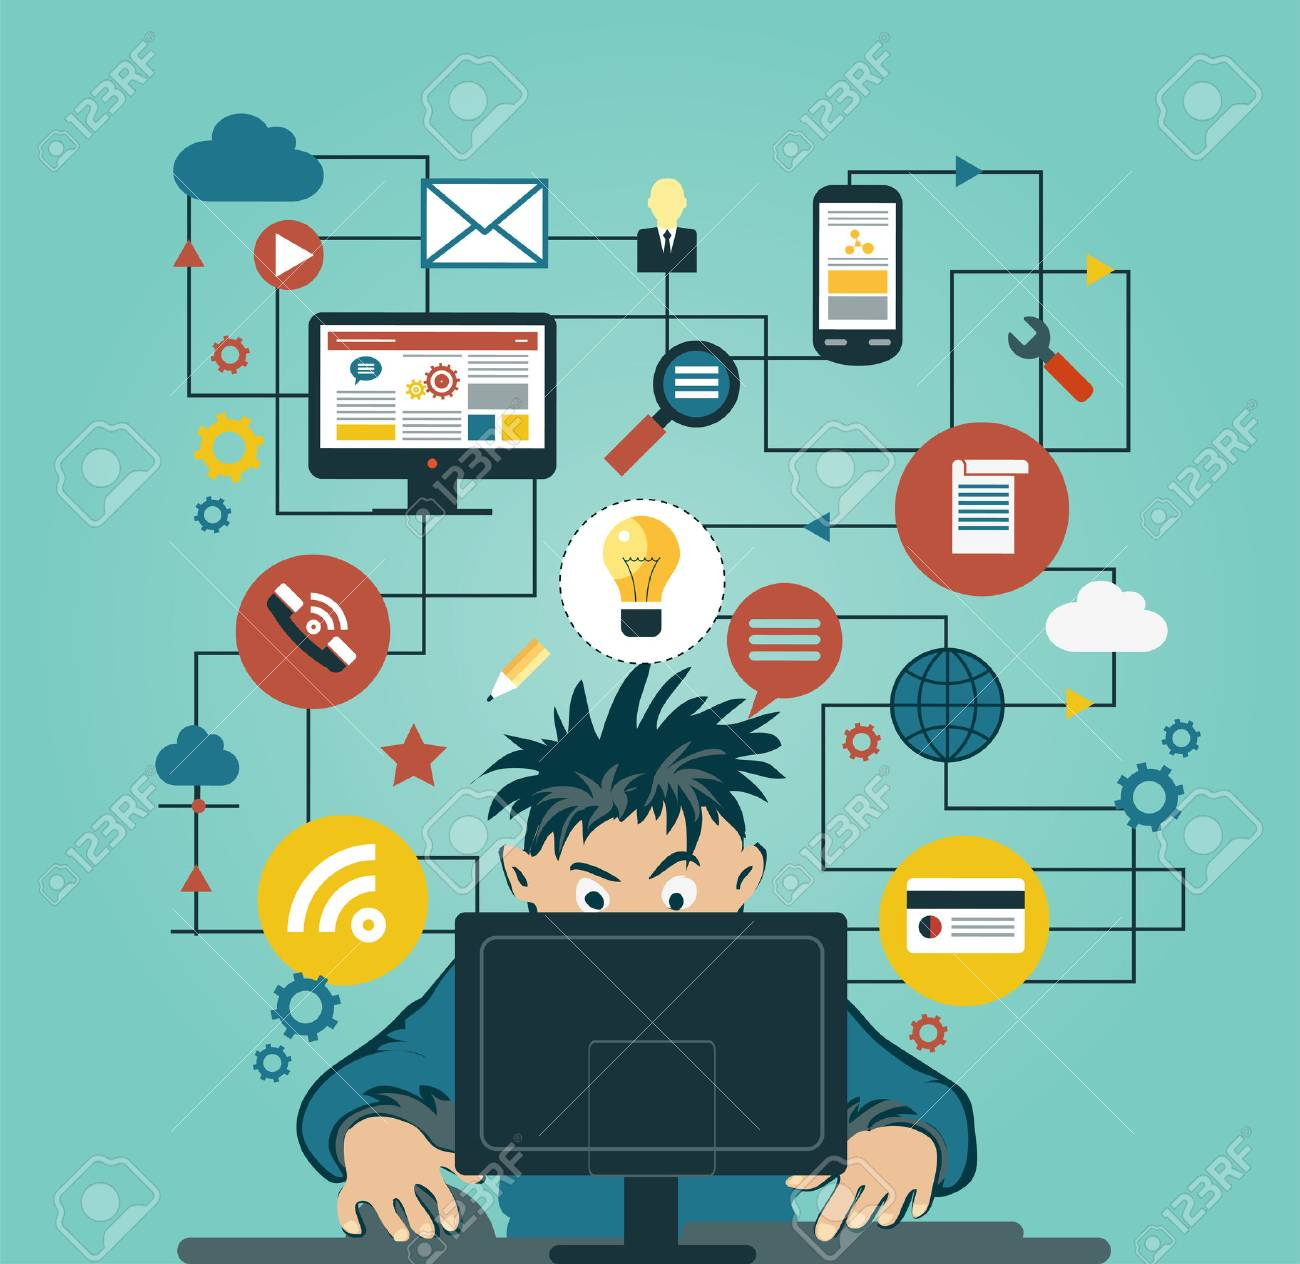 A man at the home computers surrounded by icons. Concept of communication in the network - 56750387